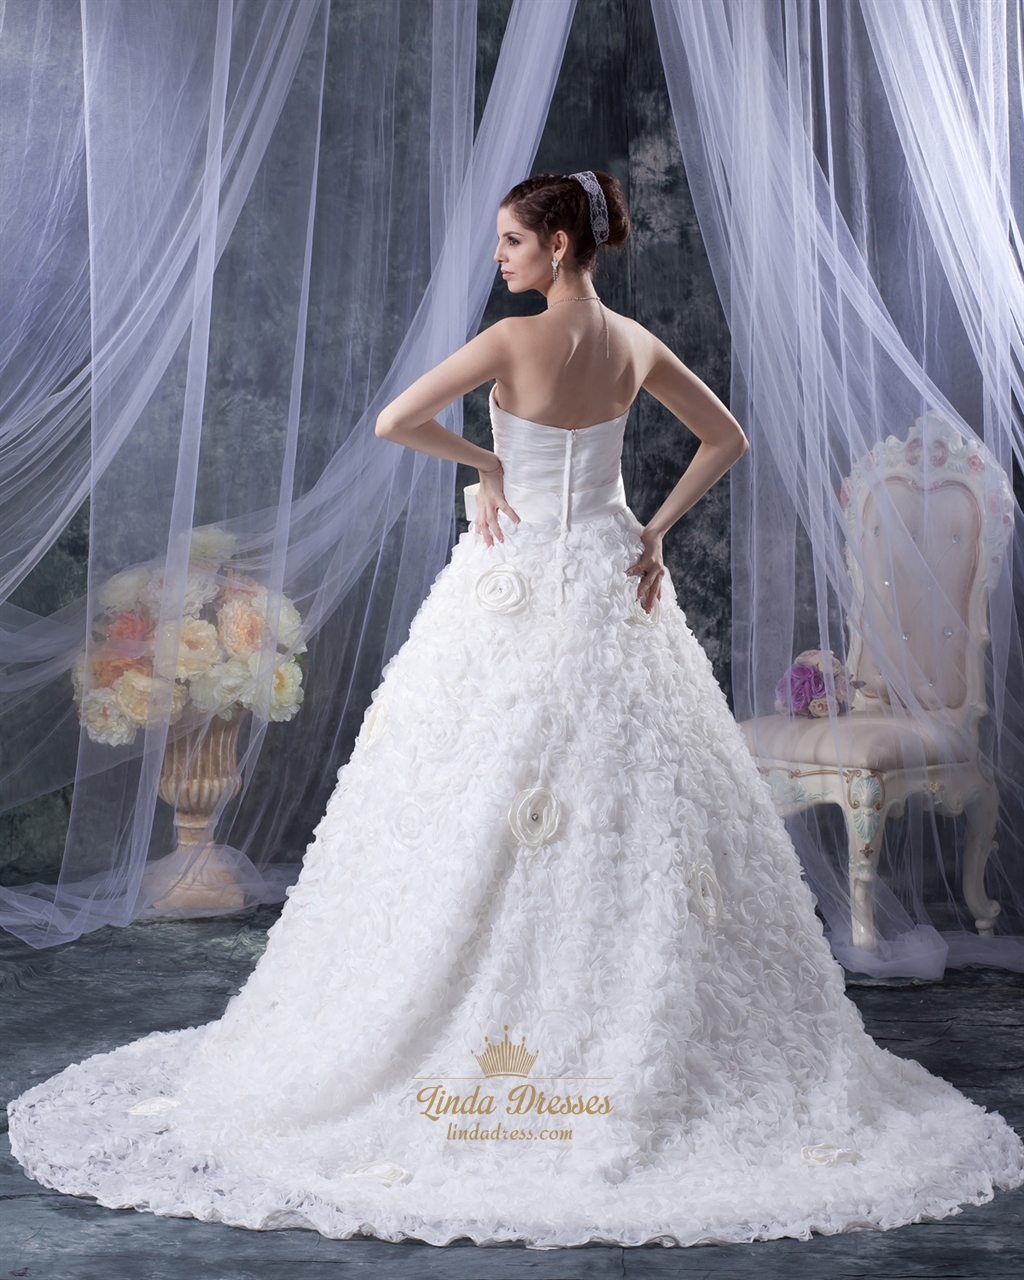 White Strapless A-Line Sweetheart Tulle Wedding Dress With